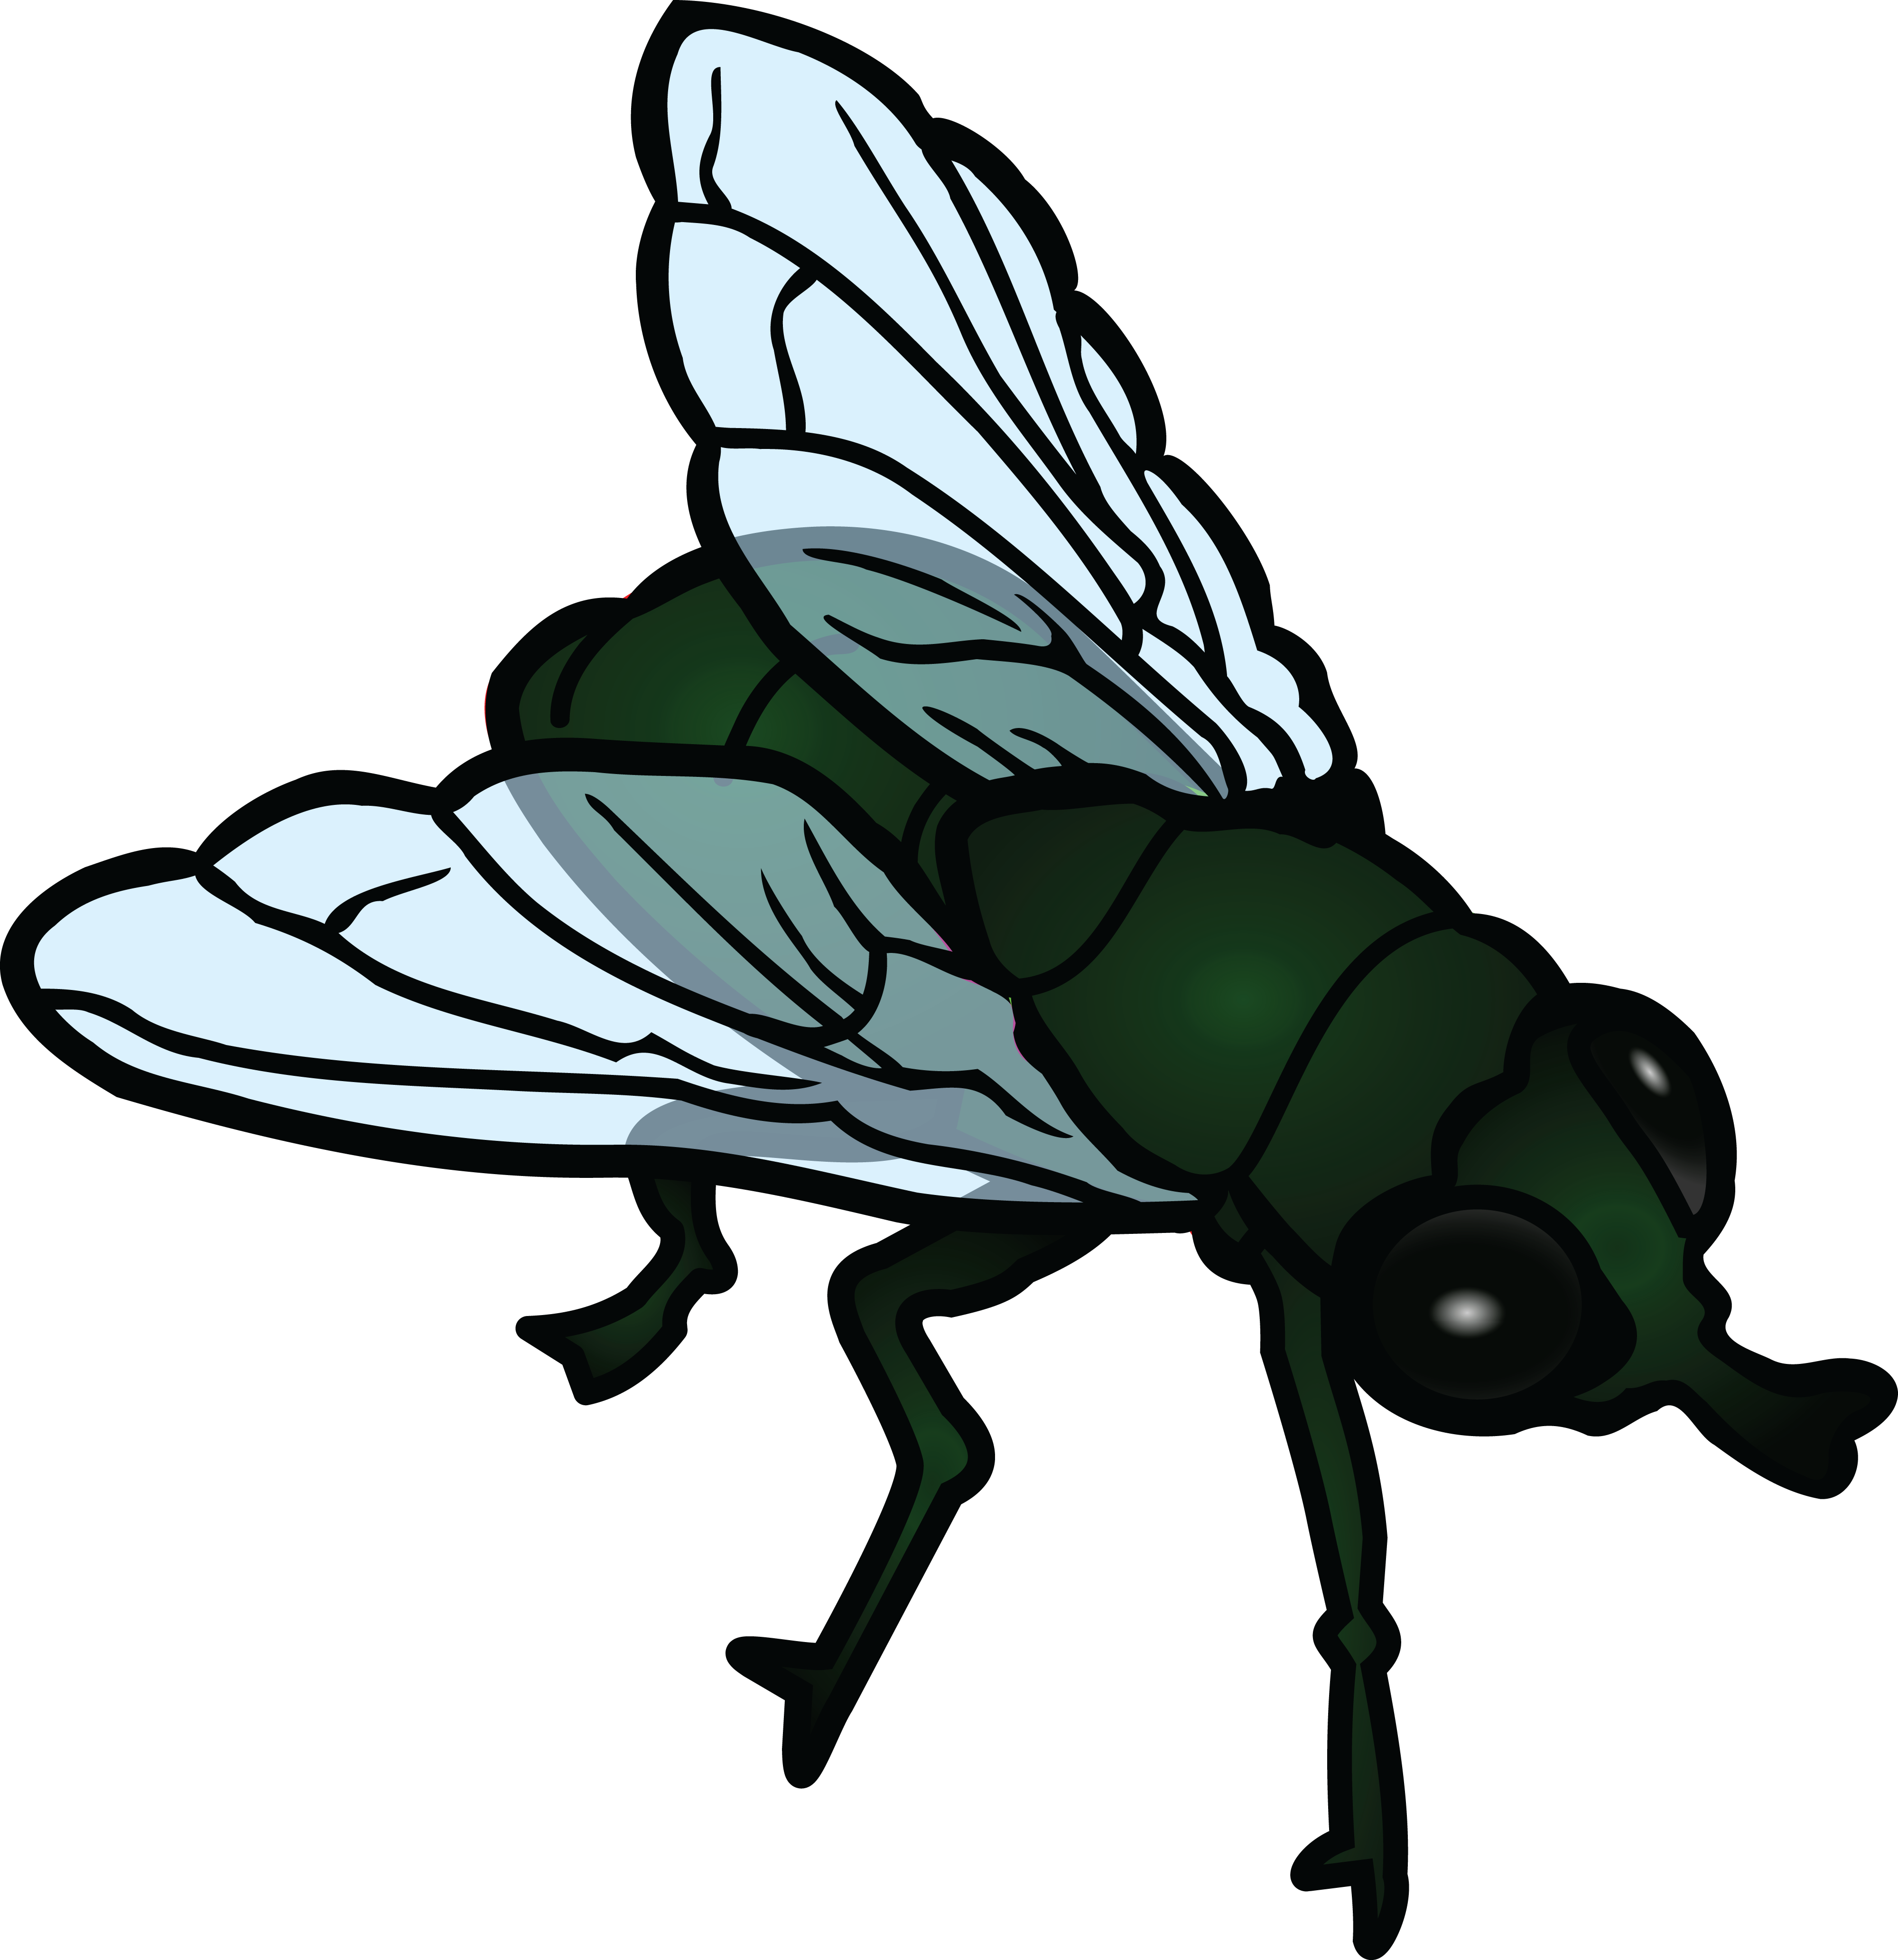 Collection of free flies. Fly clipart winged insect